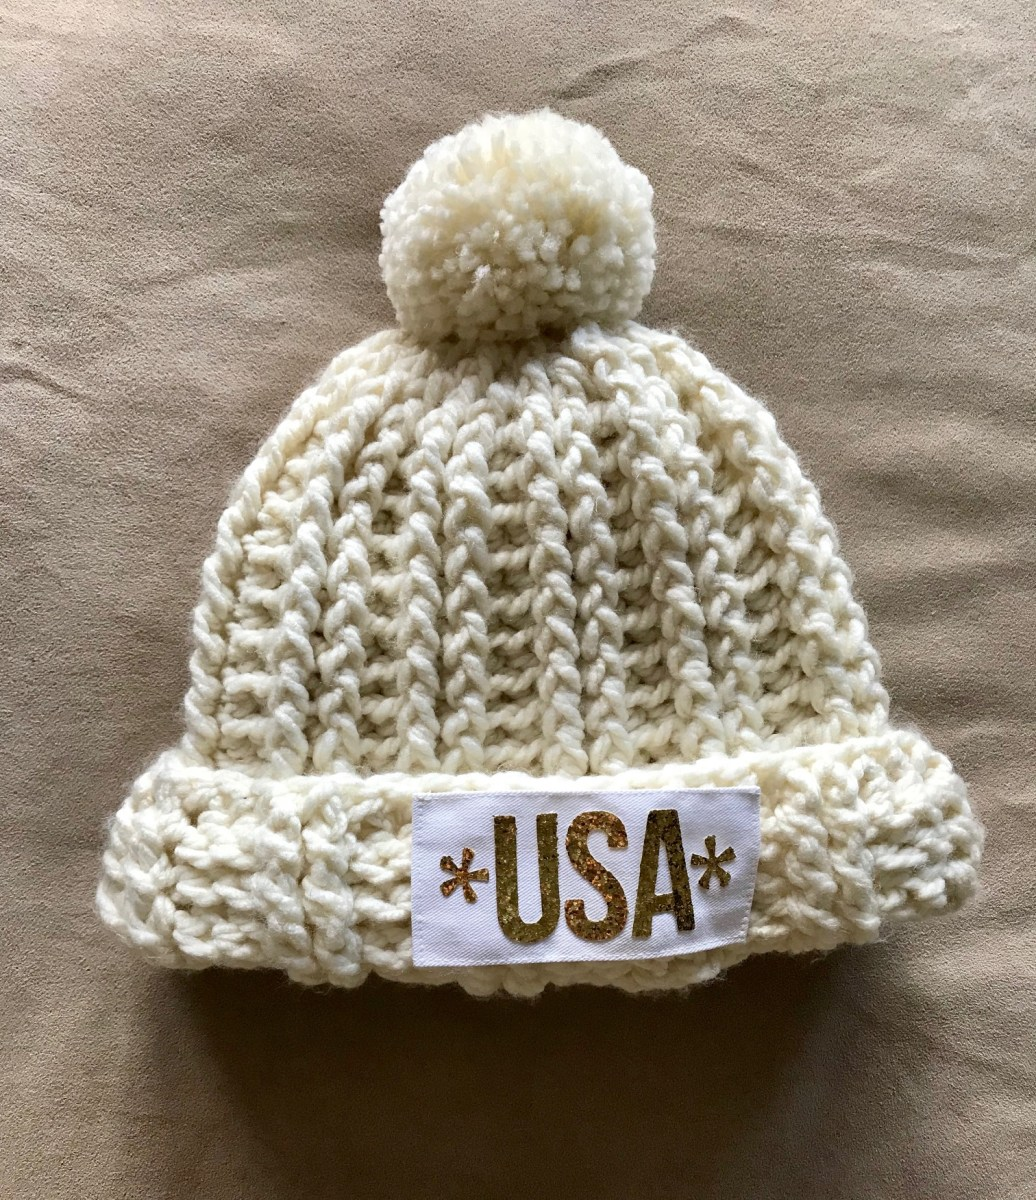 The Halfpike Gold Medal Beanie